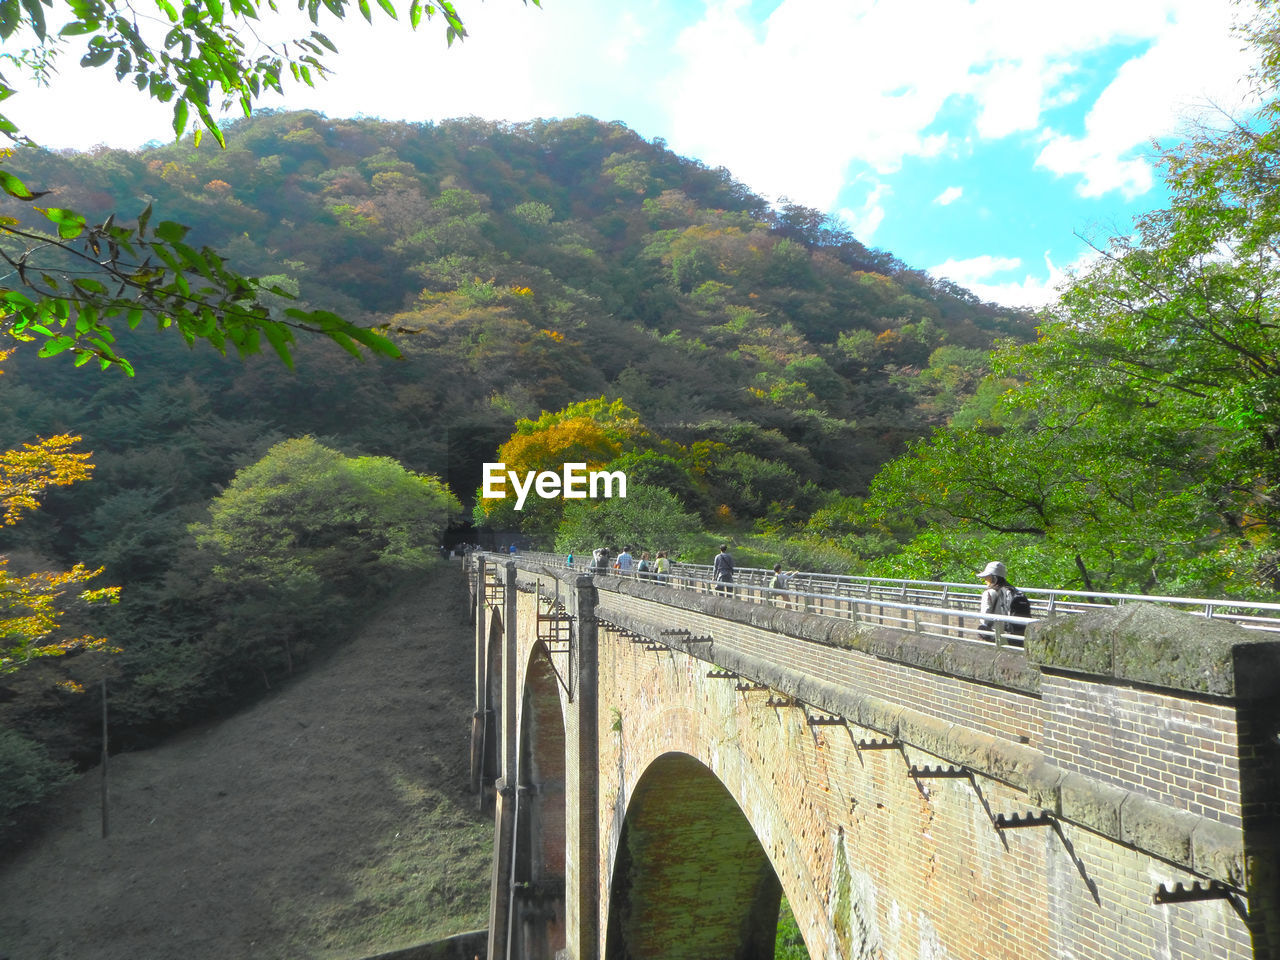 tree, plant, bridge, connection, bridge - man made structure, built structure, architecture, nature, mountain, day, sky, transportation, no people, growth, arch, forest, beauty in nature, outdoors, tranquility, cloud - sky, arch bridge